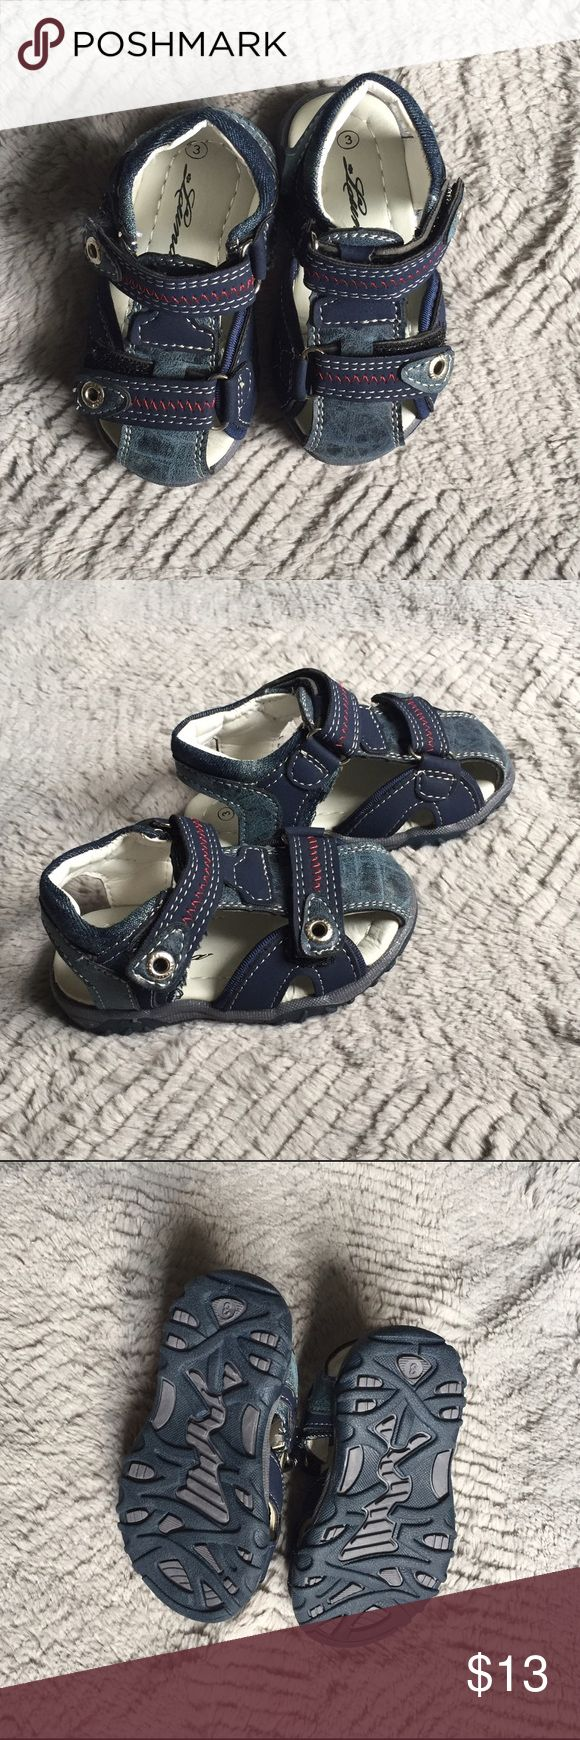 NWOT Blue Boy Sandals Brand new boys sandals. Labeled 3 but fit like a 4. Never worn, were too big for my son when he wore a 3 then the summer ended so he never wore them. Luna Shoes Sandals & Flip Flops